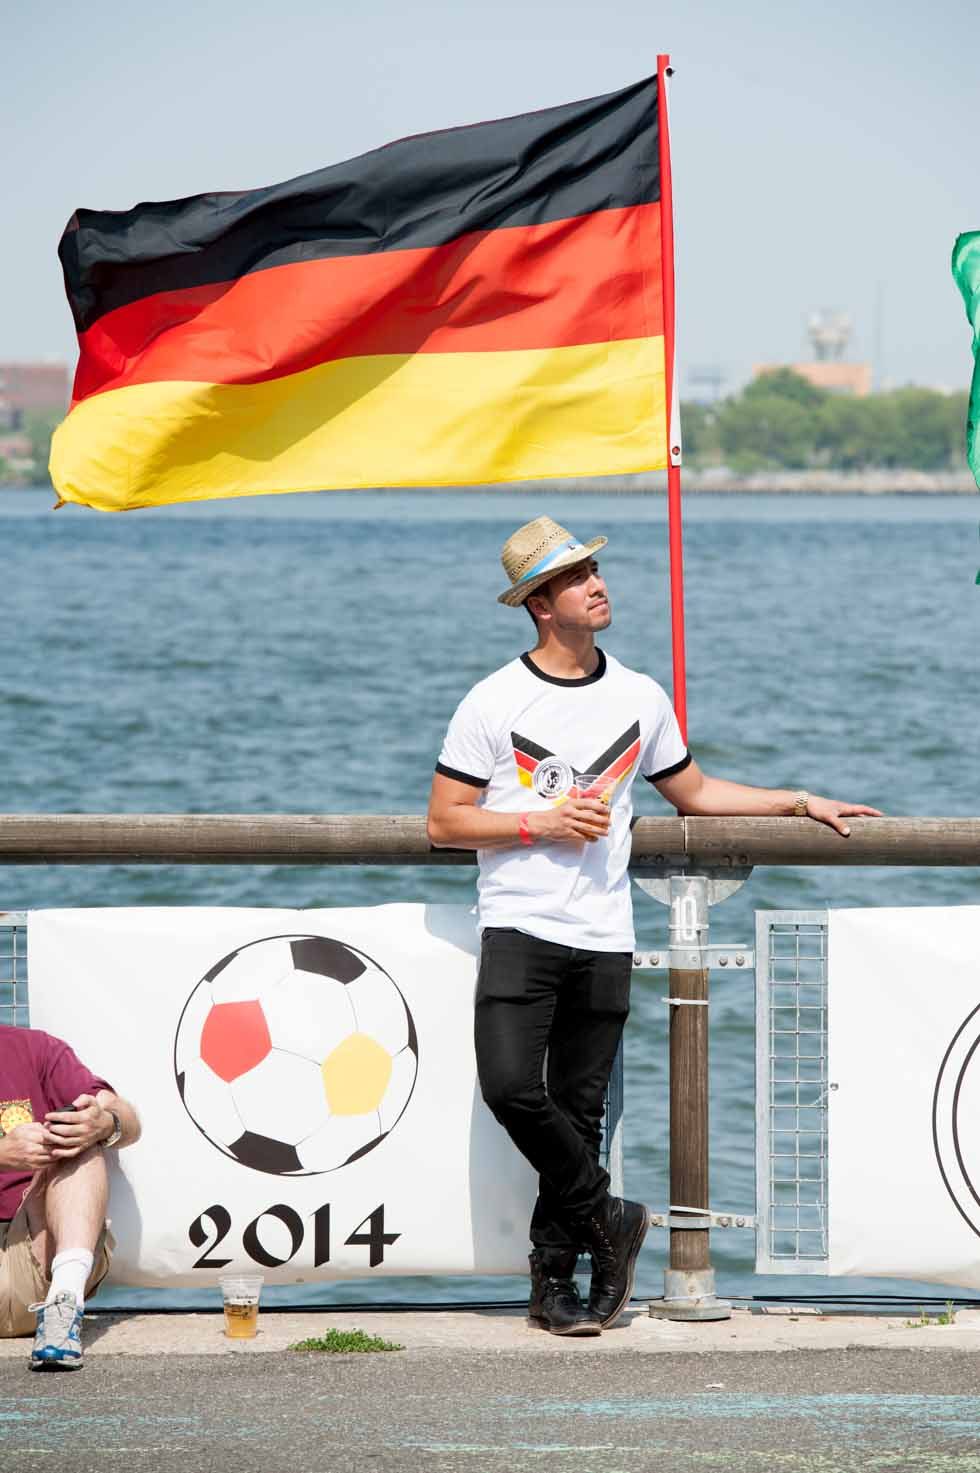 zum-schneider-nyc-2014-world-cup-germany-brazil-0647.jpg